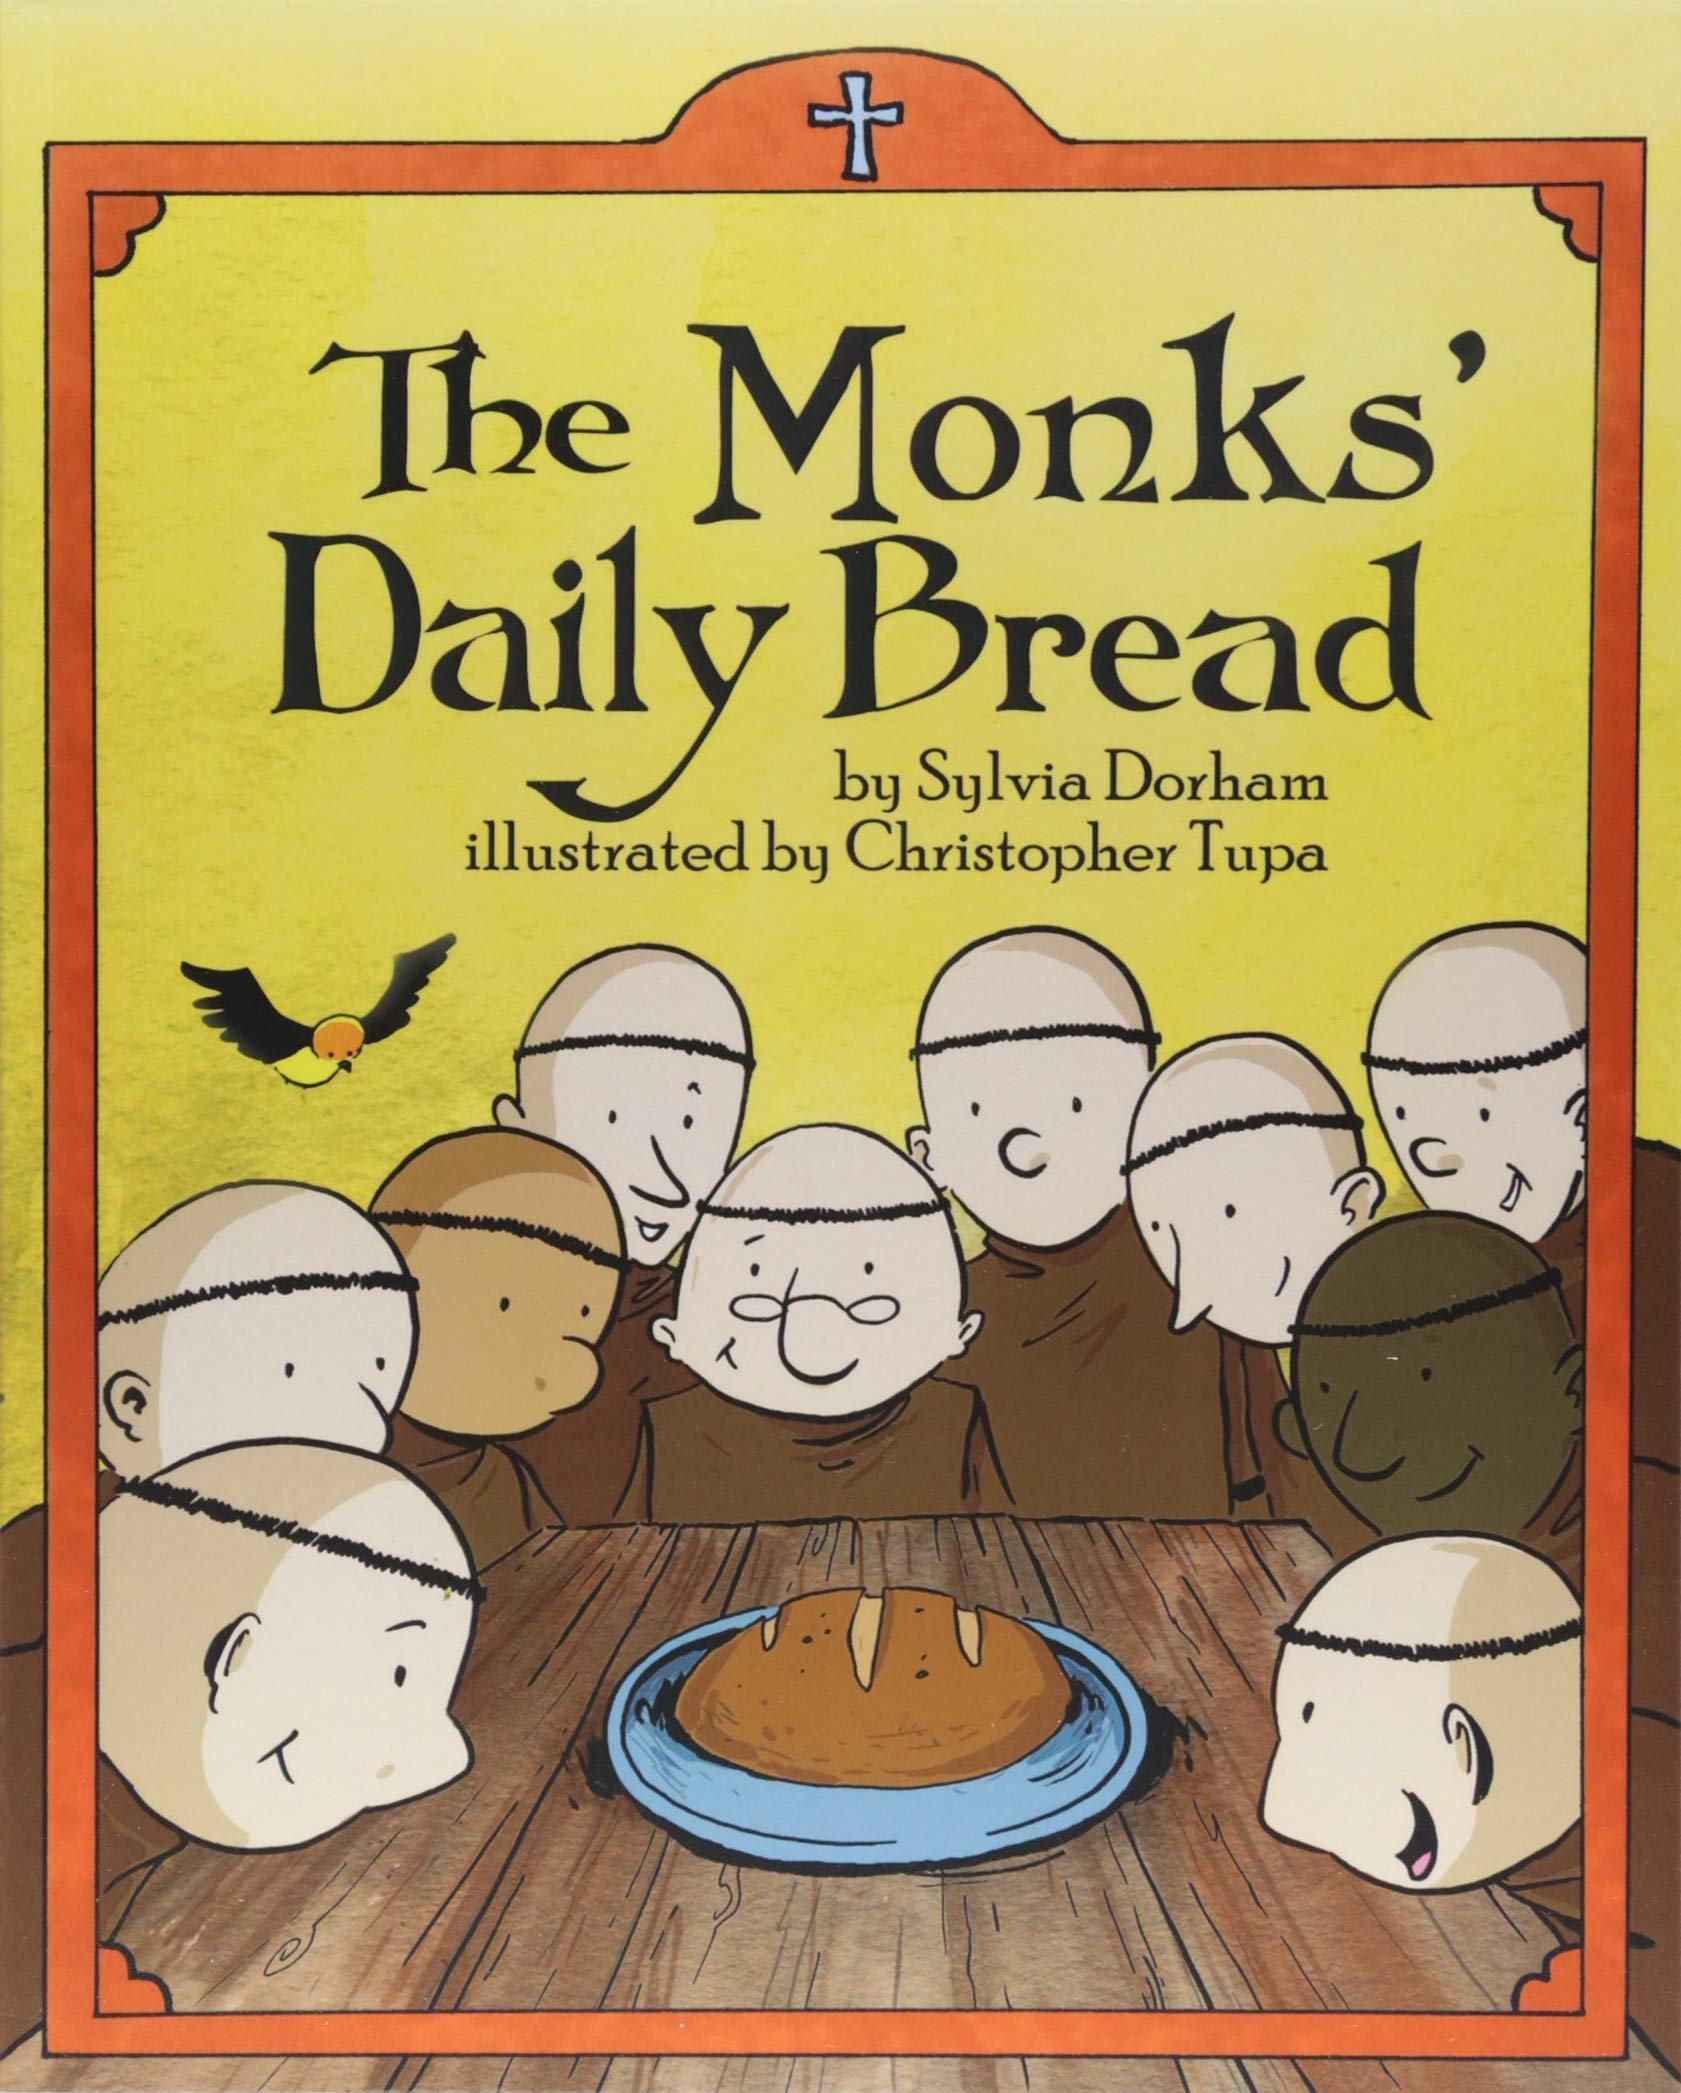 The Monks Daily Bread